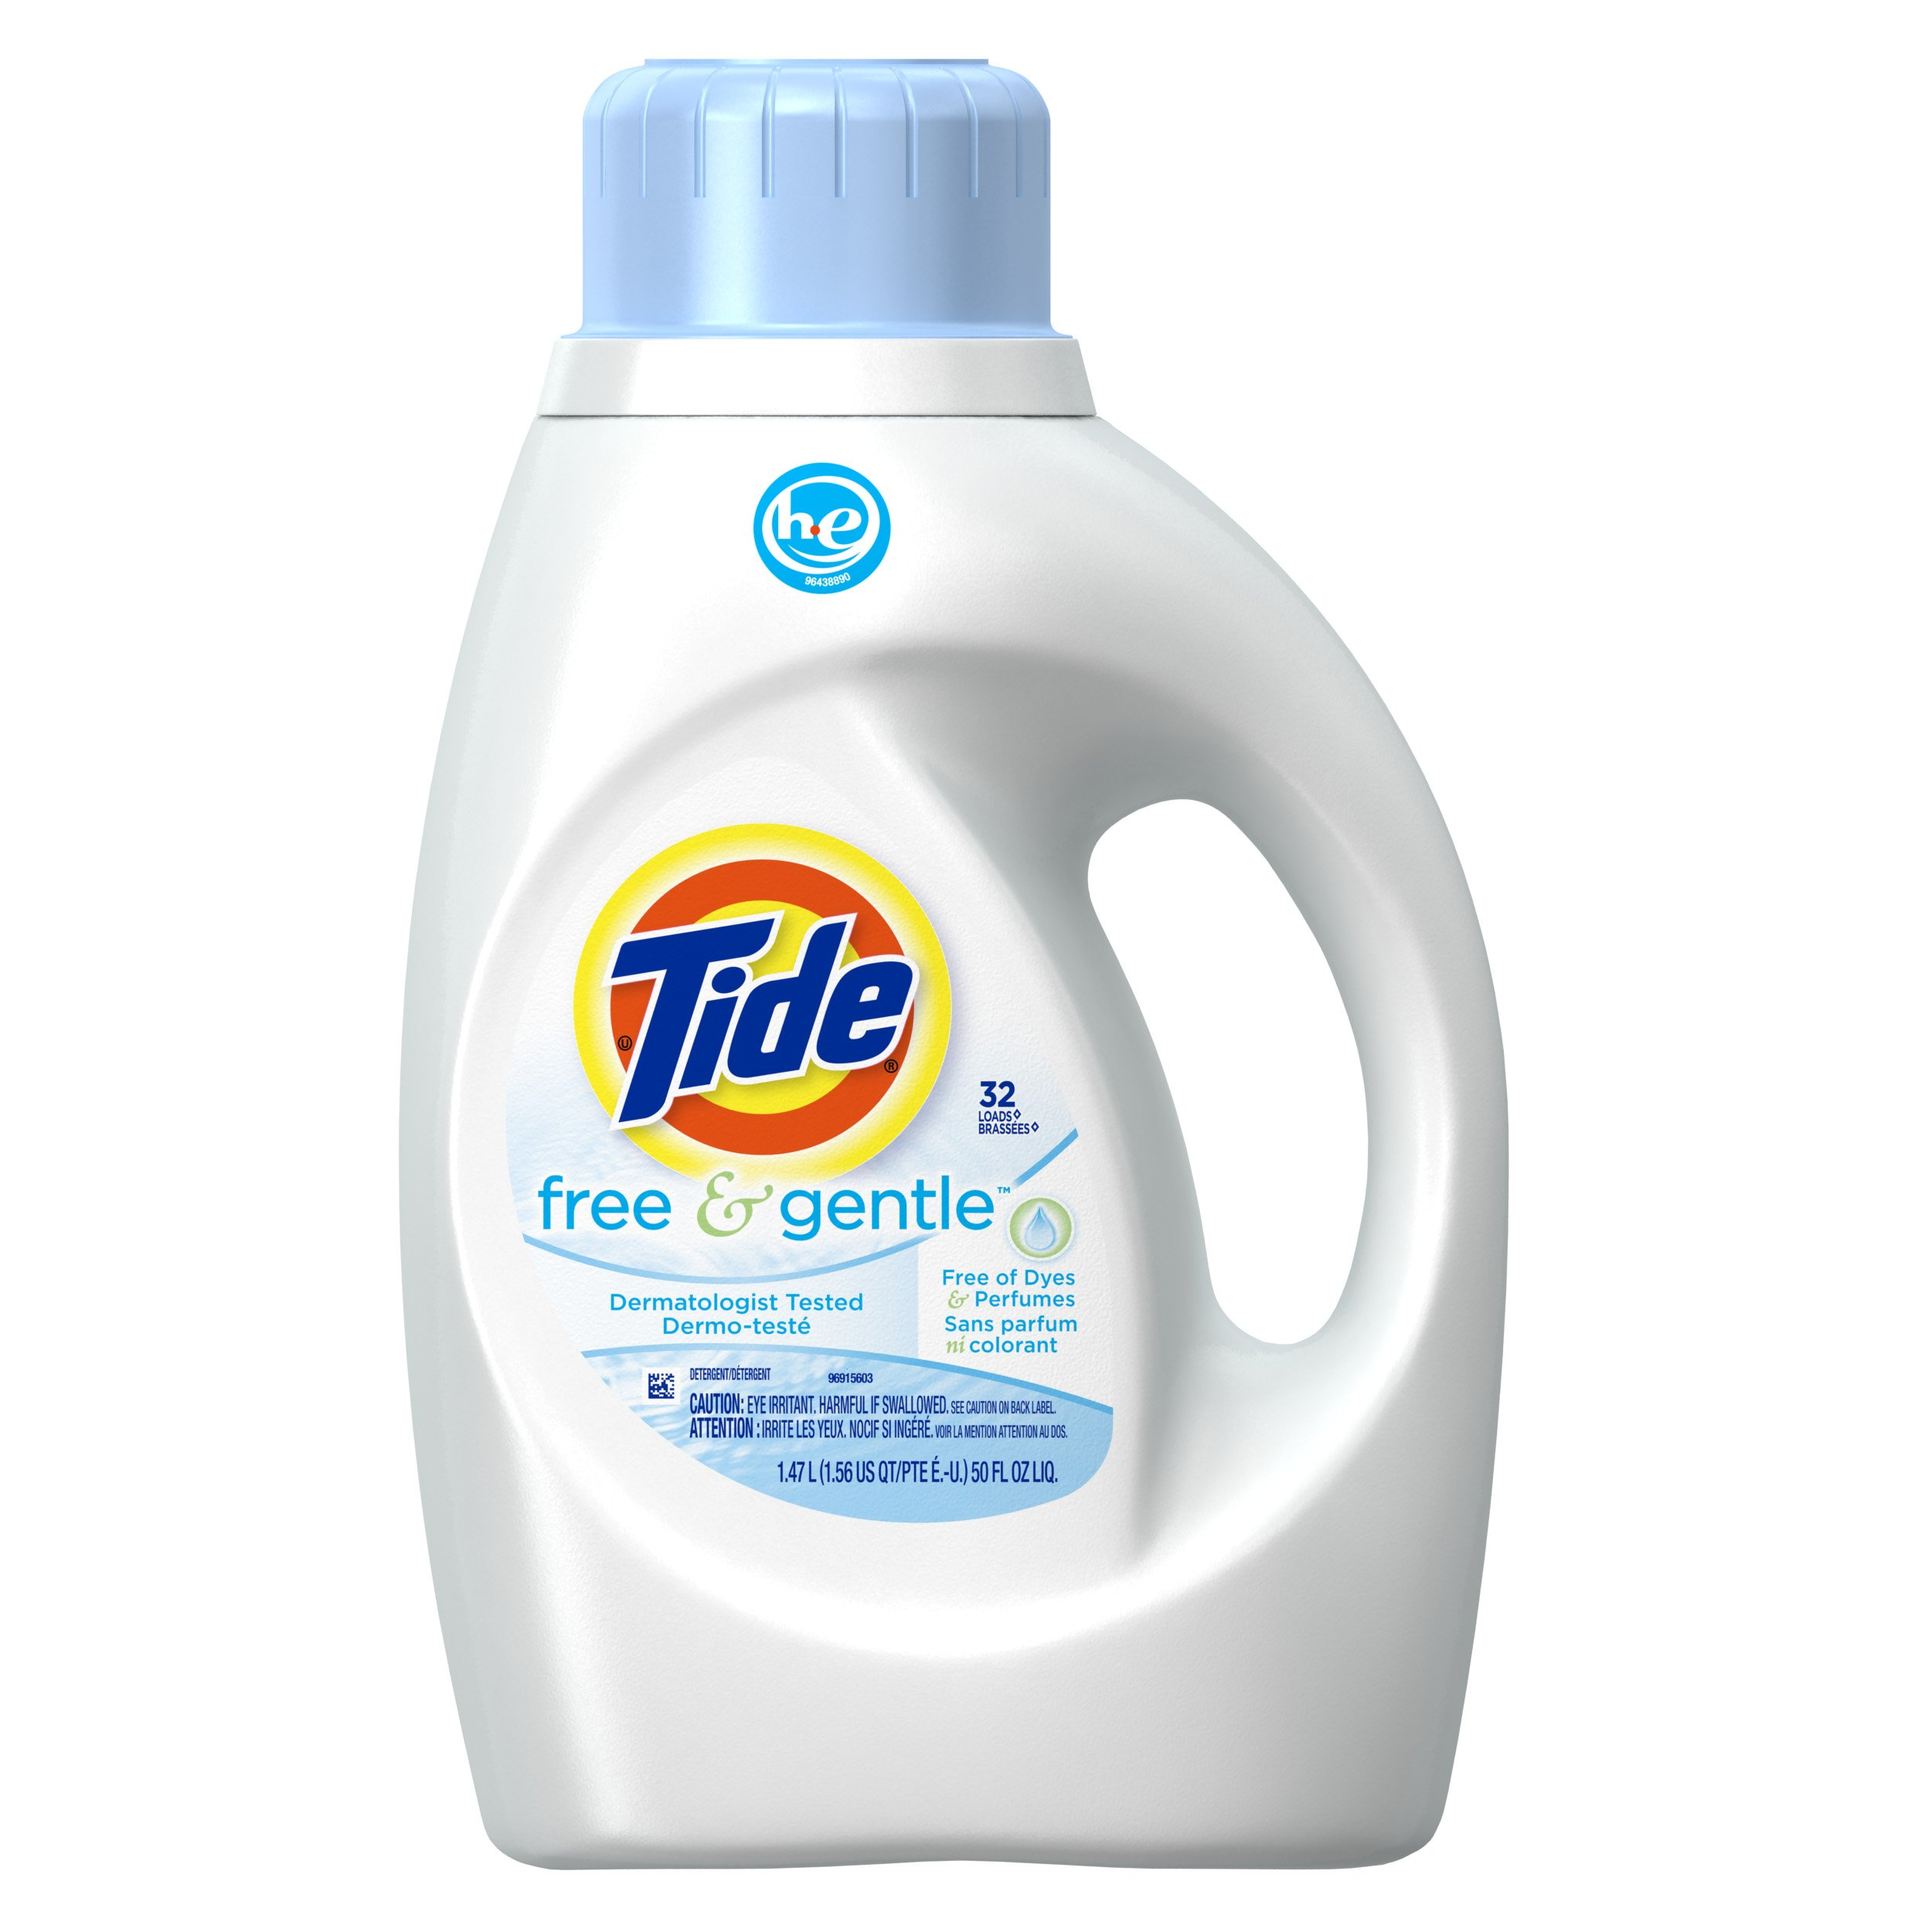 Tide Free & Gentle HE Turbo Liquid Laundry Detergent, Pack of 2, Unscented, 1.47 L (32 Loads)